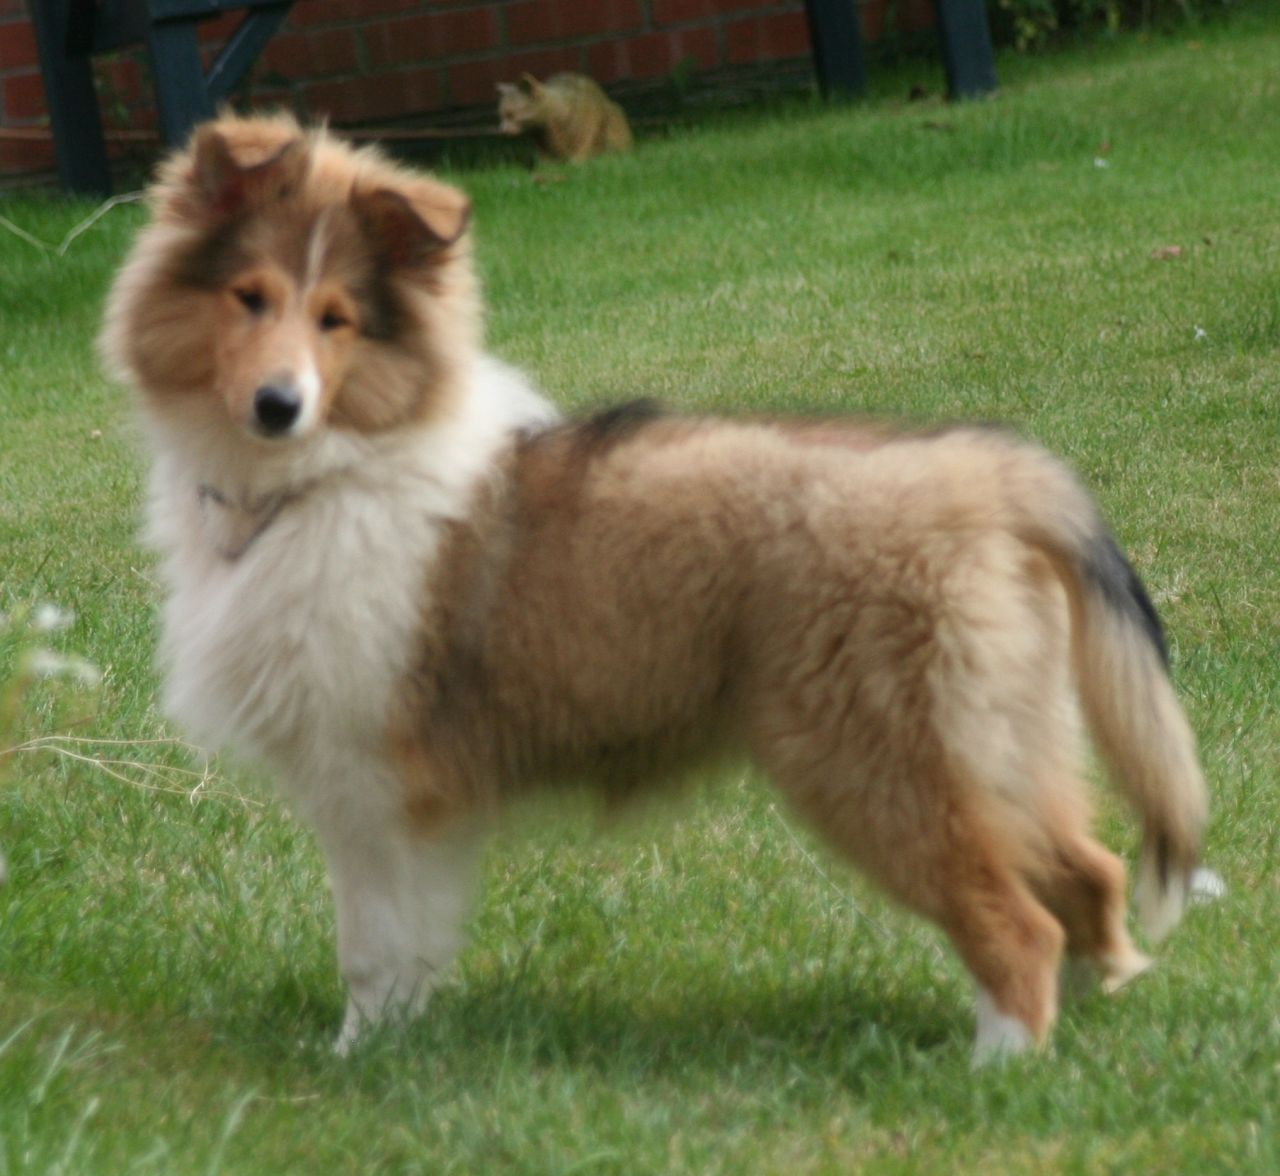 Collie, Rough Puppies: Collie, Rough Collie Puppies Breed